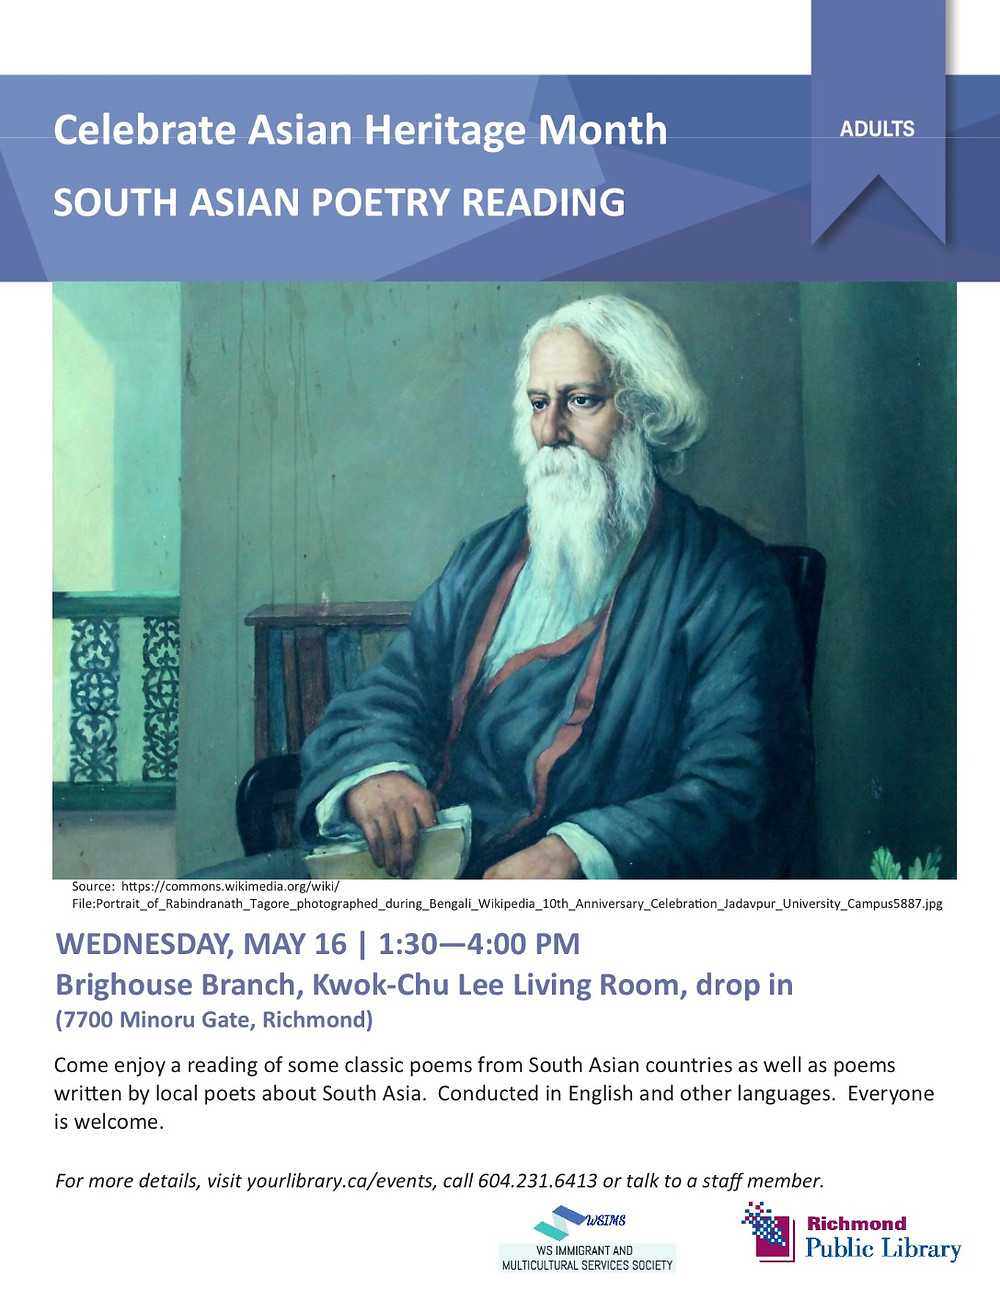 Celebrate Asian Heritage Month - South Asian Poetry Reading